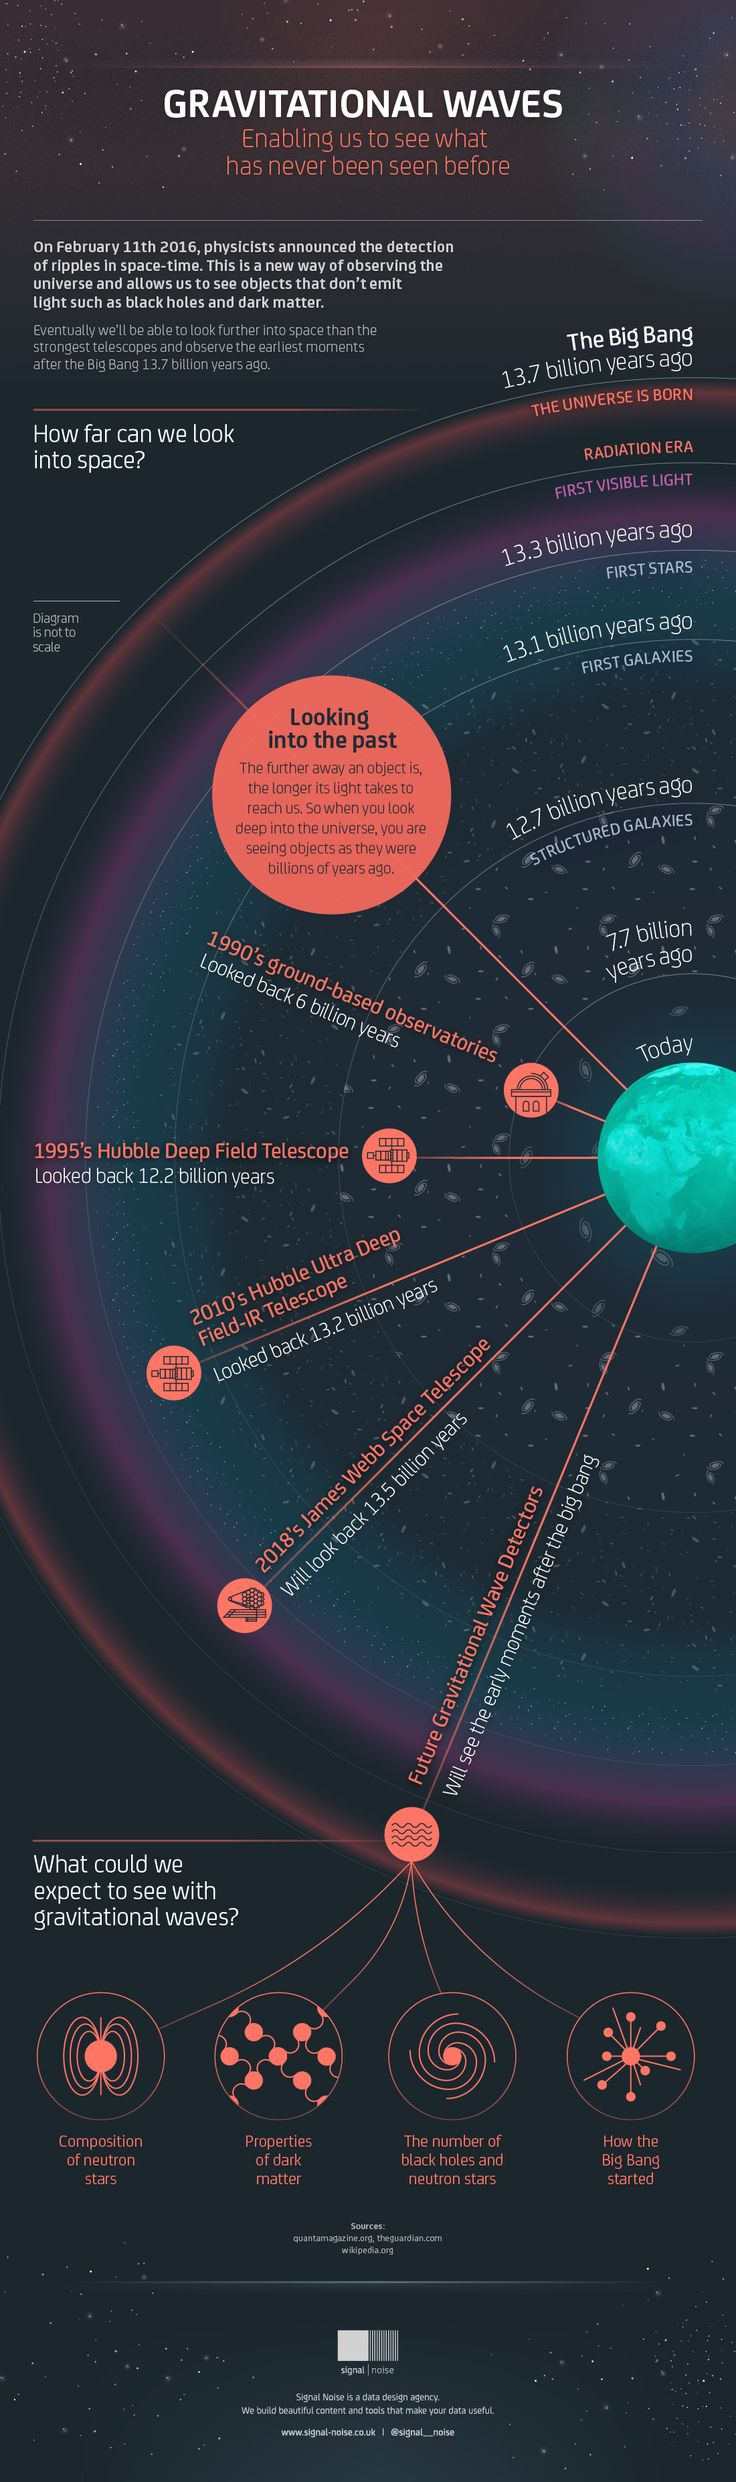 Gravitational Waves Infographic - How far can we look into deep space